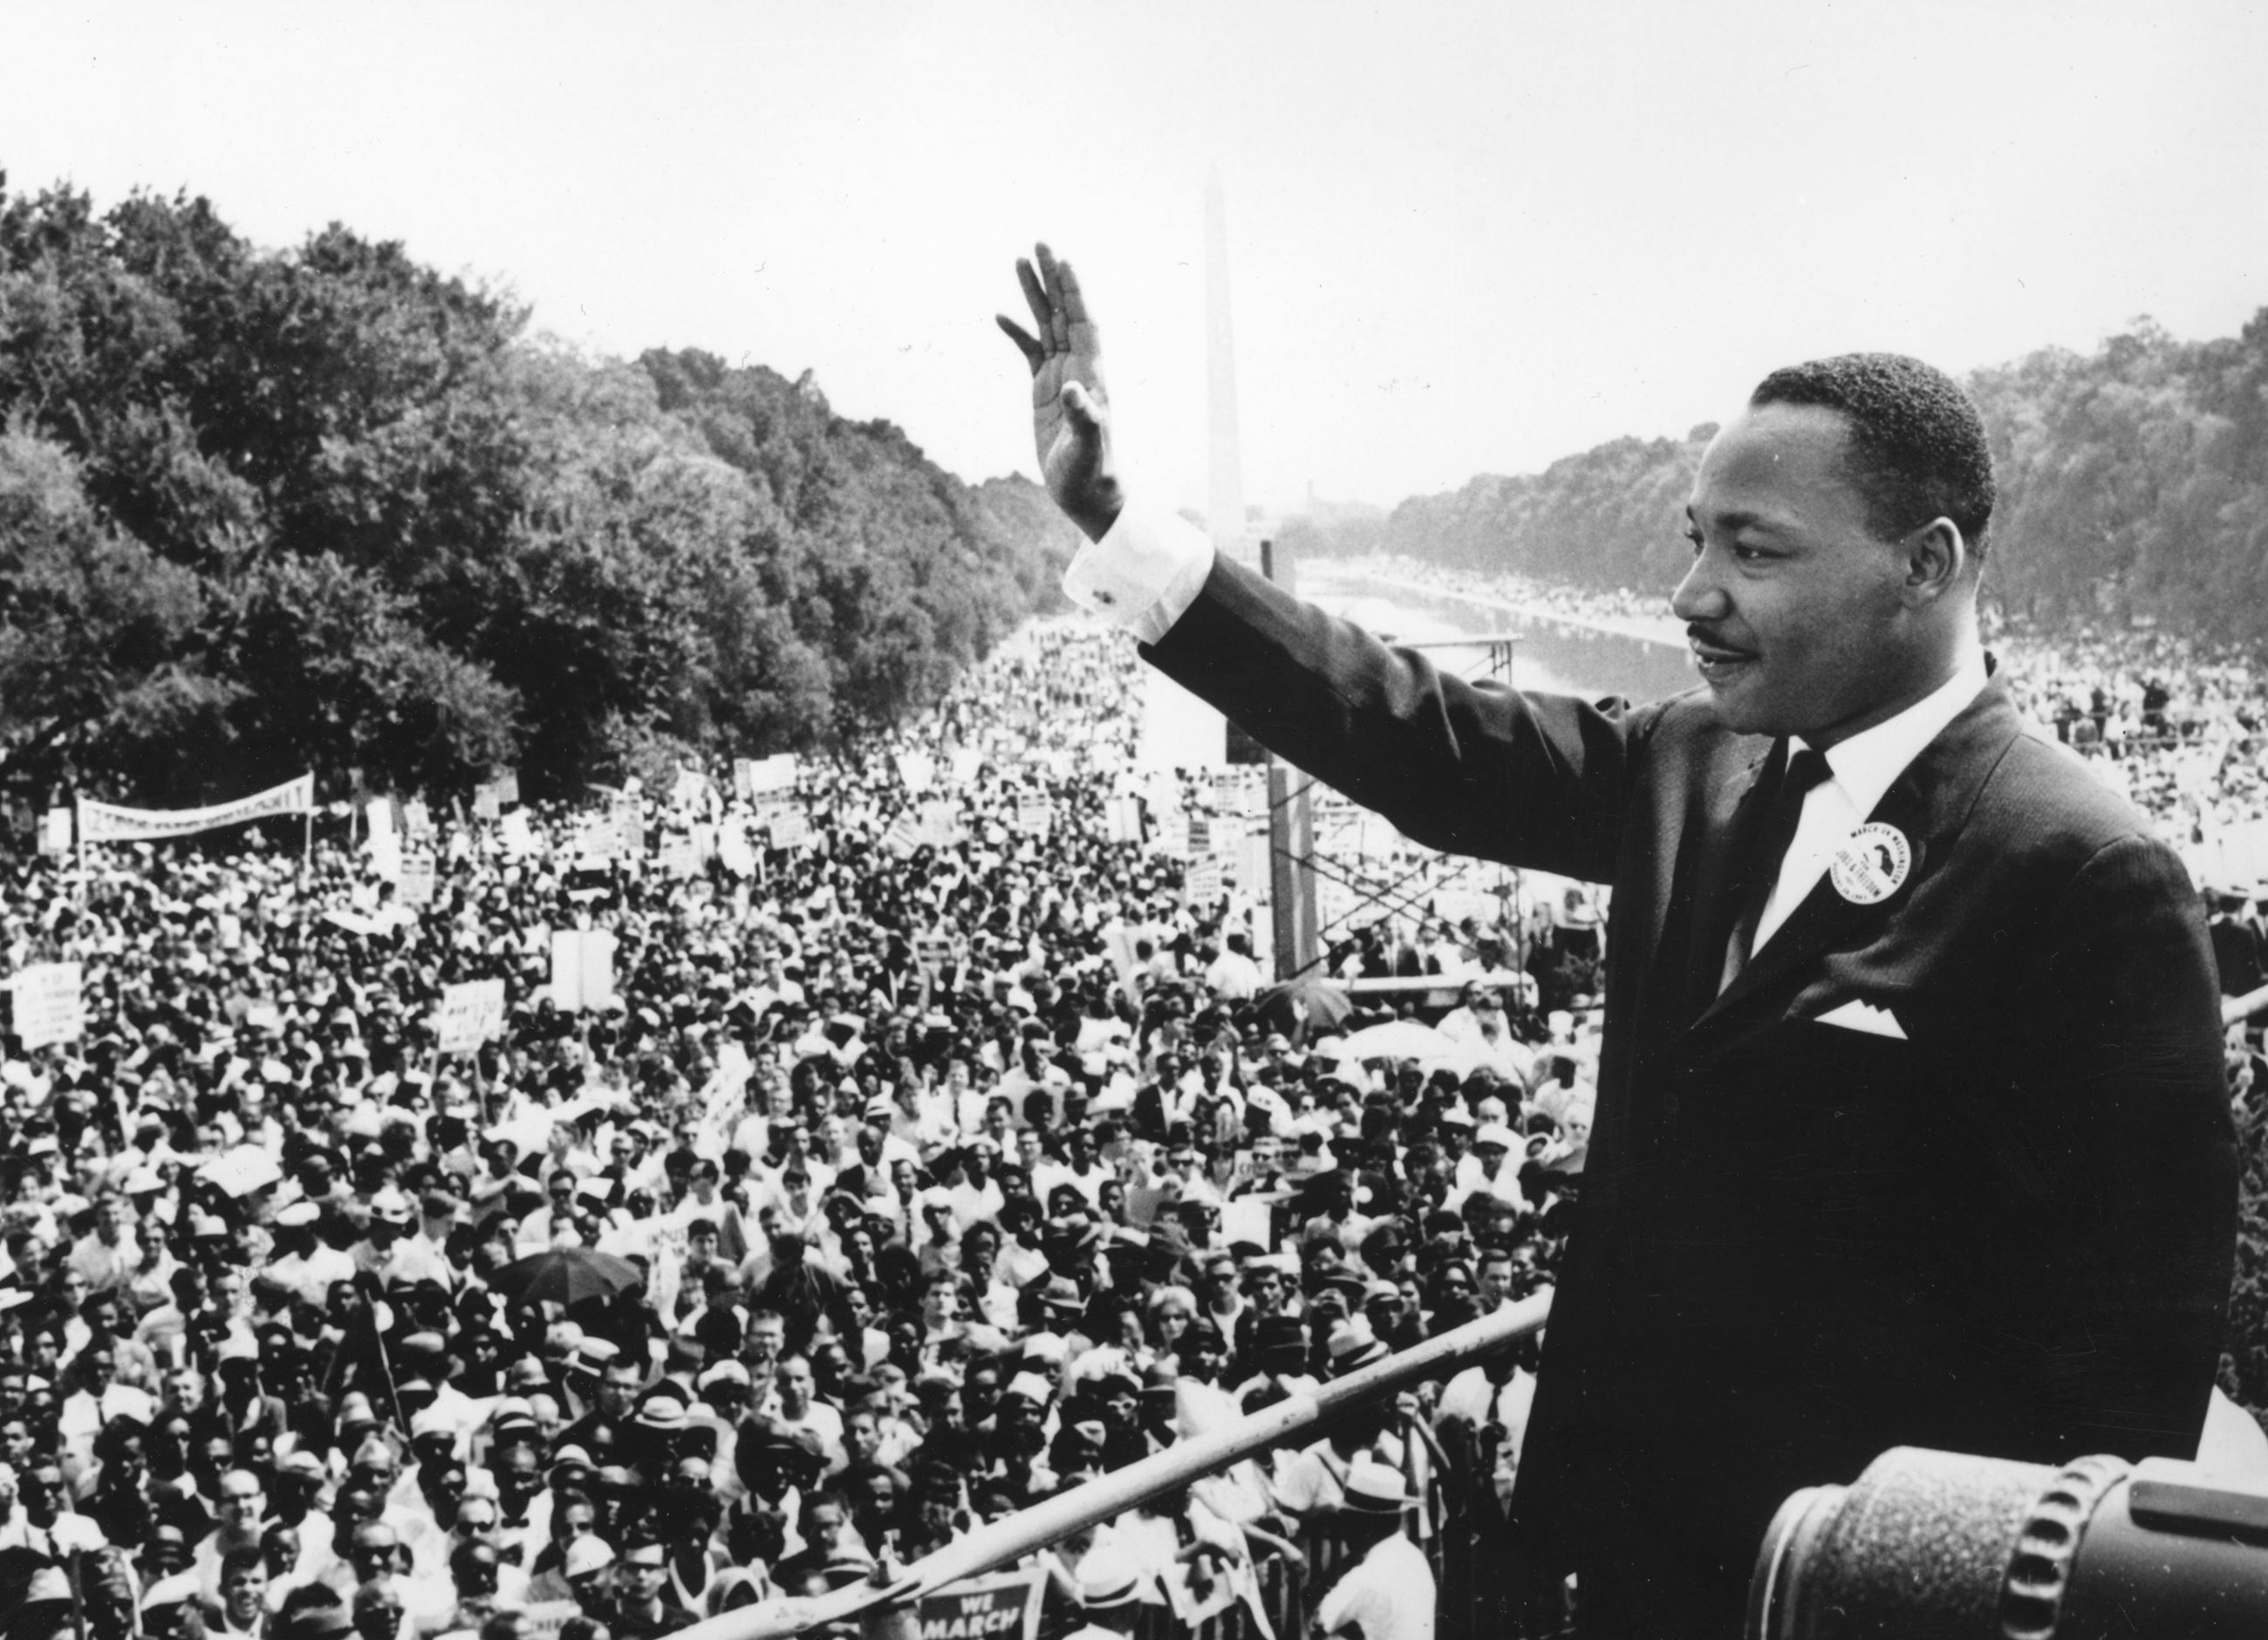 A historic photo of Dr. Martin Luther King Jr. waving in front of a large crowd